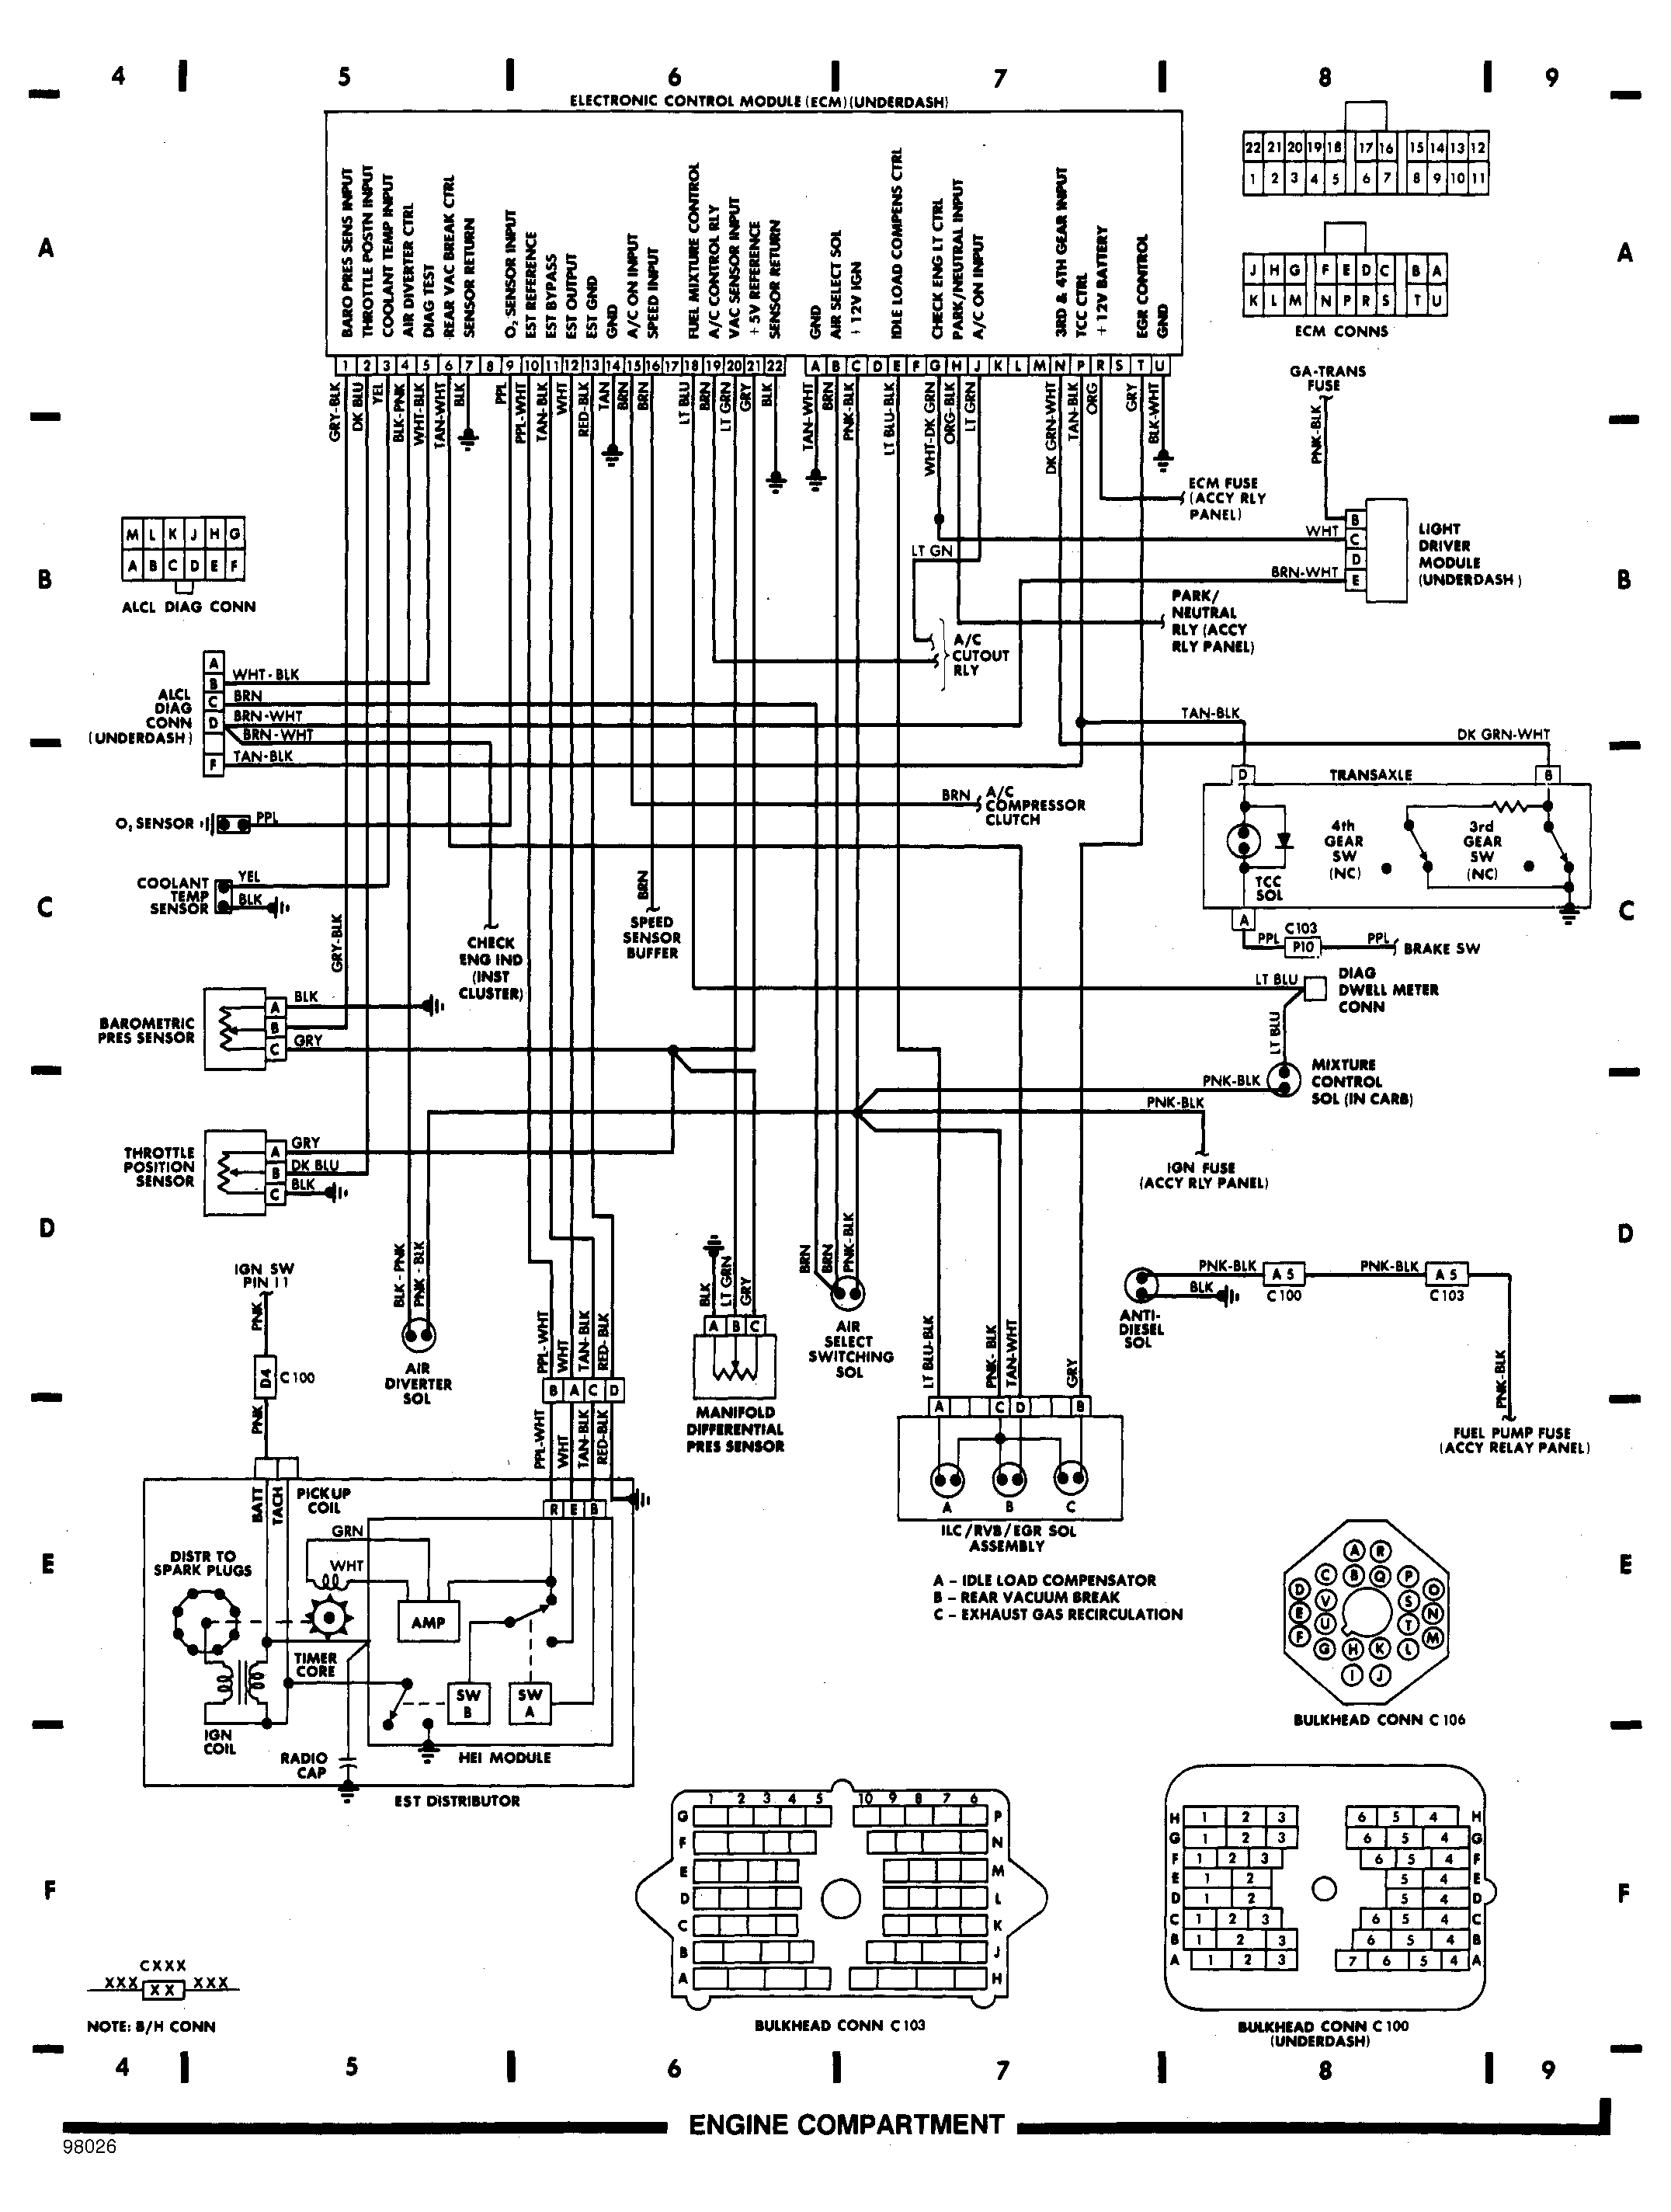 Cadillac Engine Wiring Diagram Online Manuual Of 2003 Deville Elec Diagrams Rh Cadillacresource Com Electrical For Cars